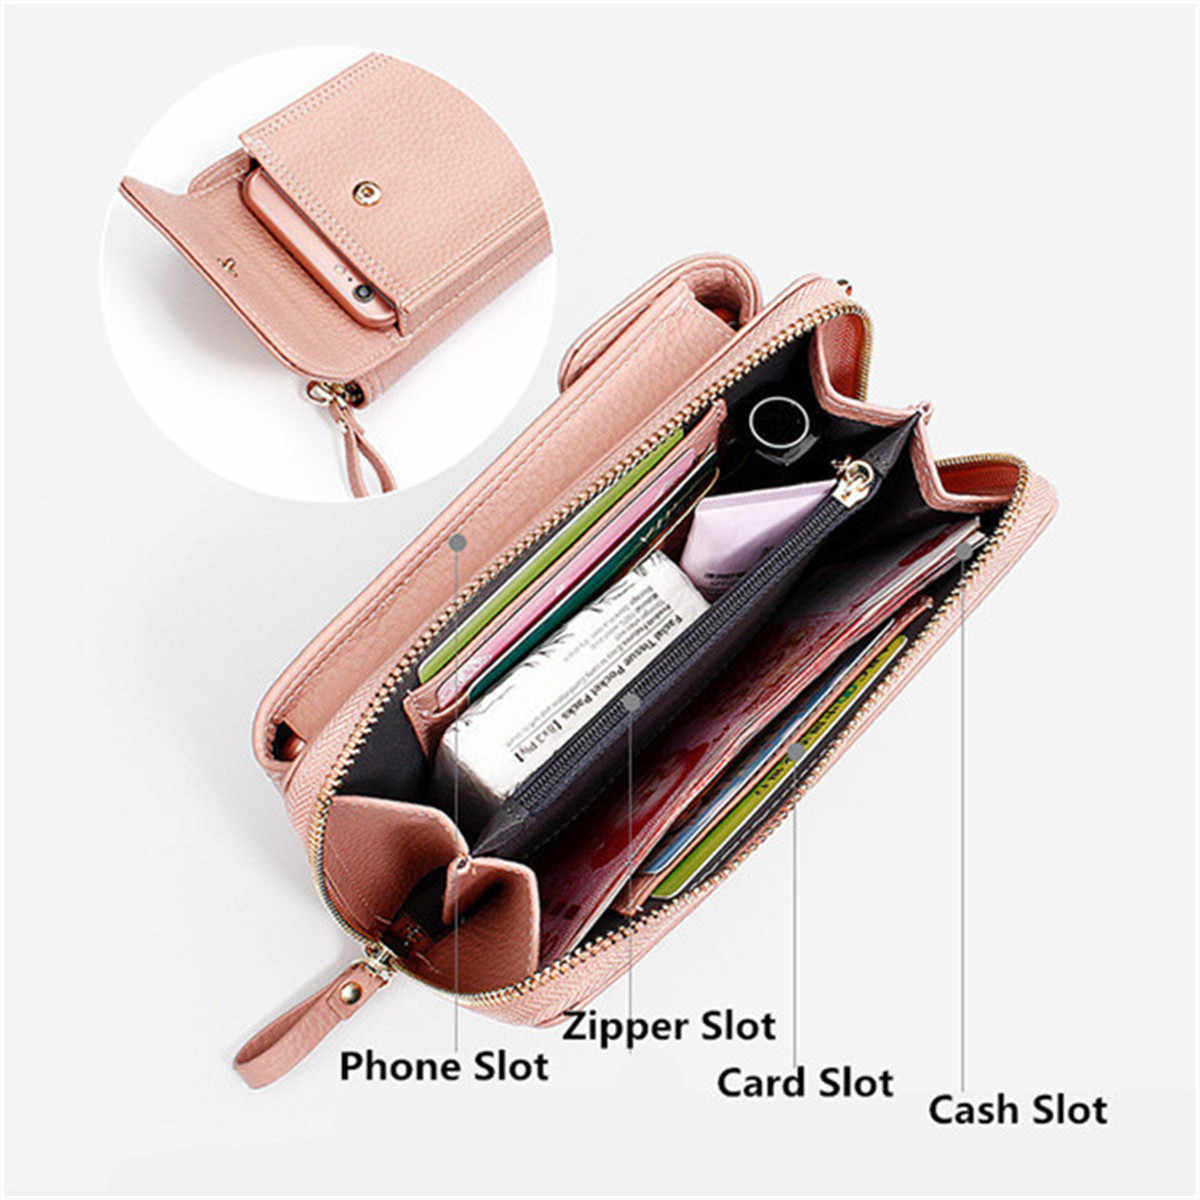 ... AEQUEEN Ladies Solid Faux leather Clutch Bag Small Crossbody Bag For  women Purses 4 Card Slot ... 6c3d3fca05